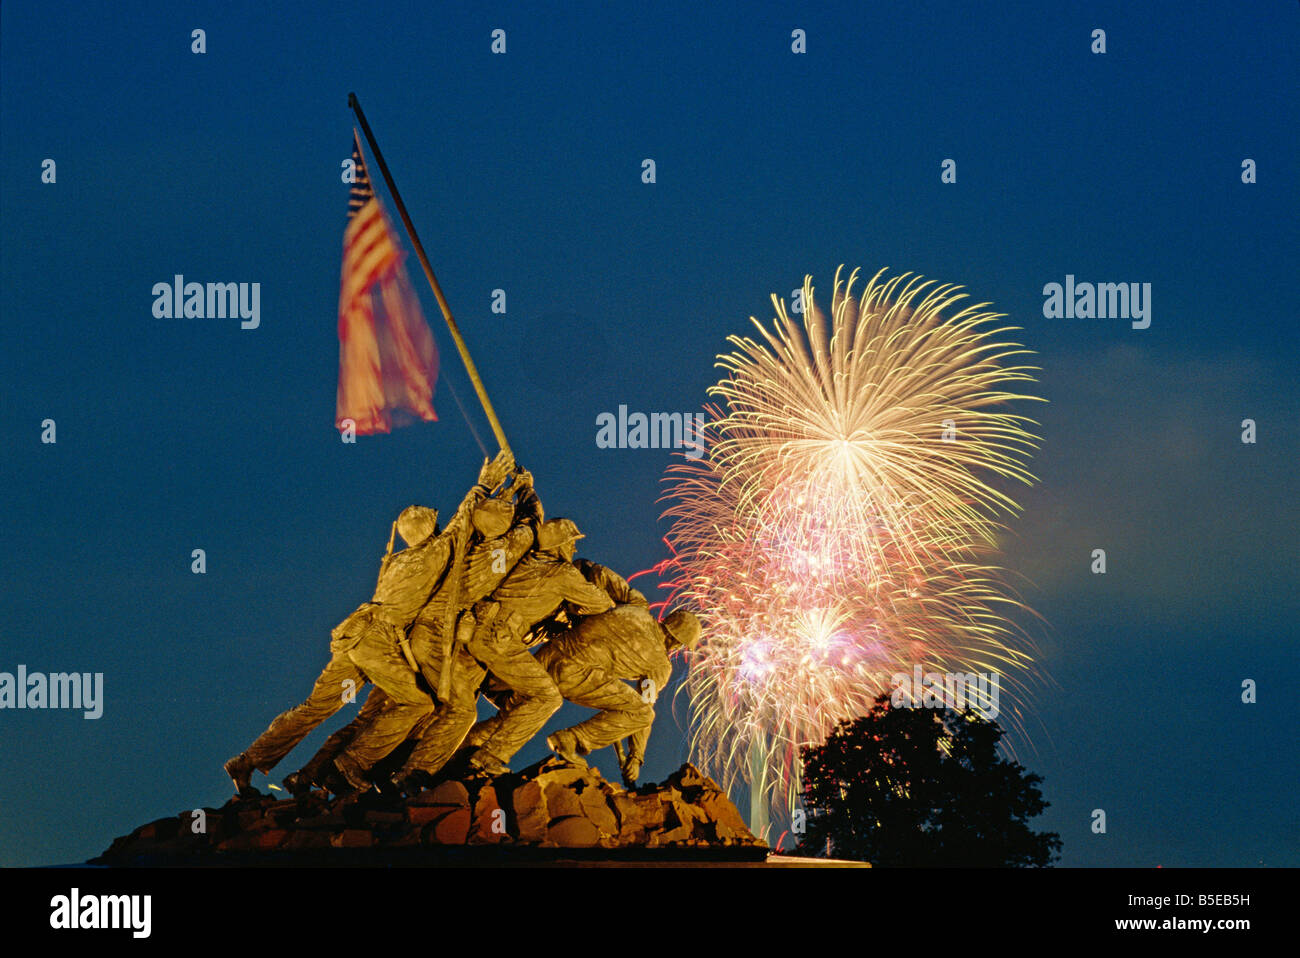 fireworks over the iwo jima memorial for the 4th of july